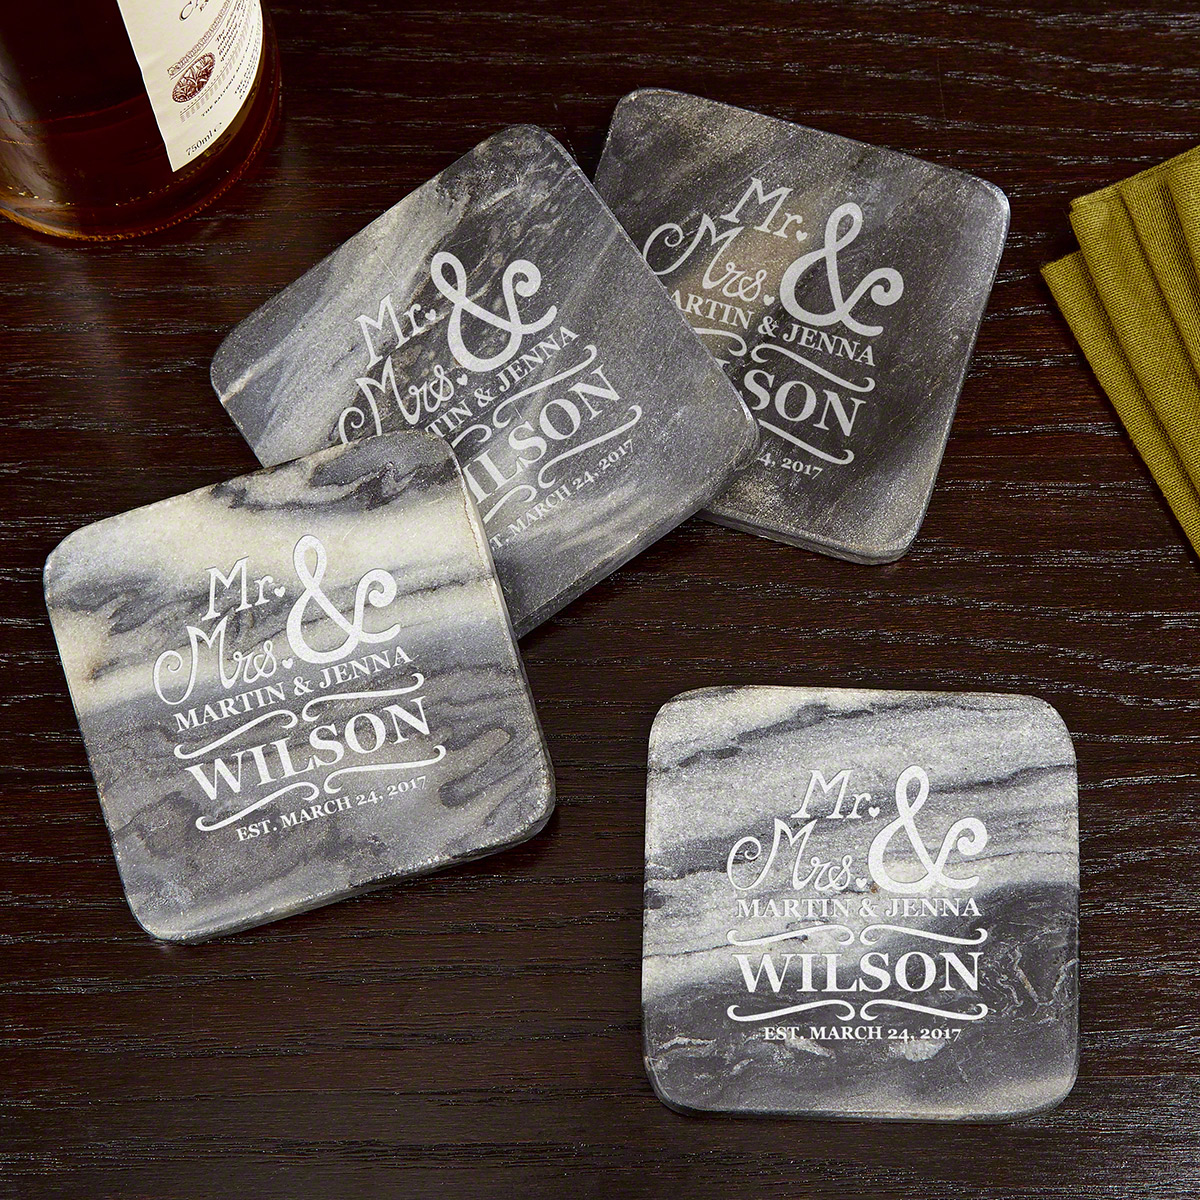 Matisse-Personalized-Marble-Coasters-Set-of-4